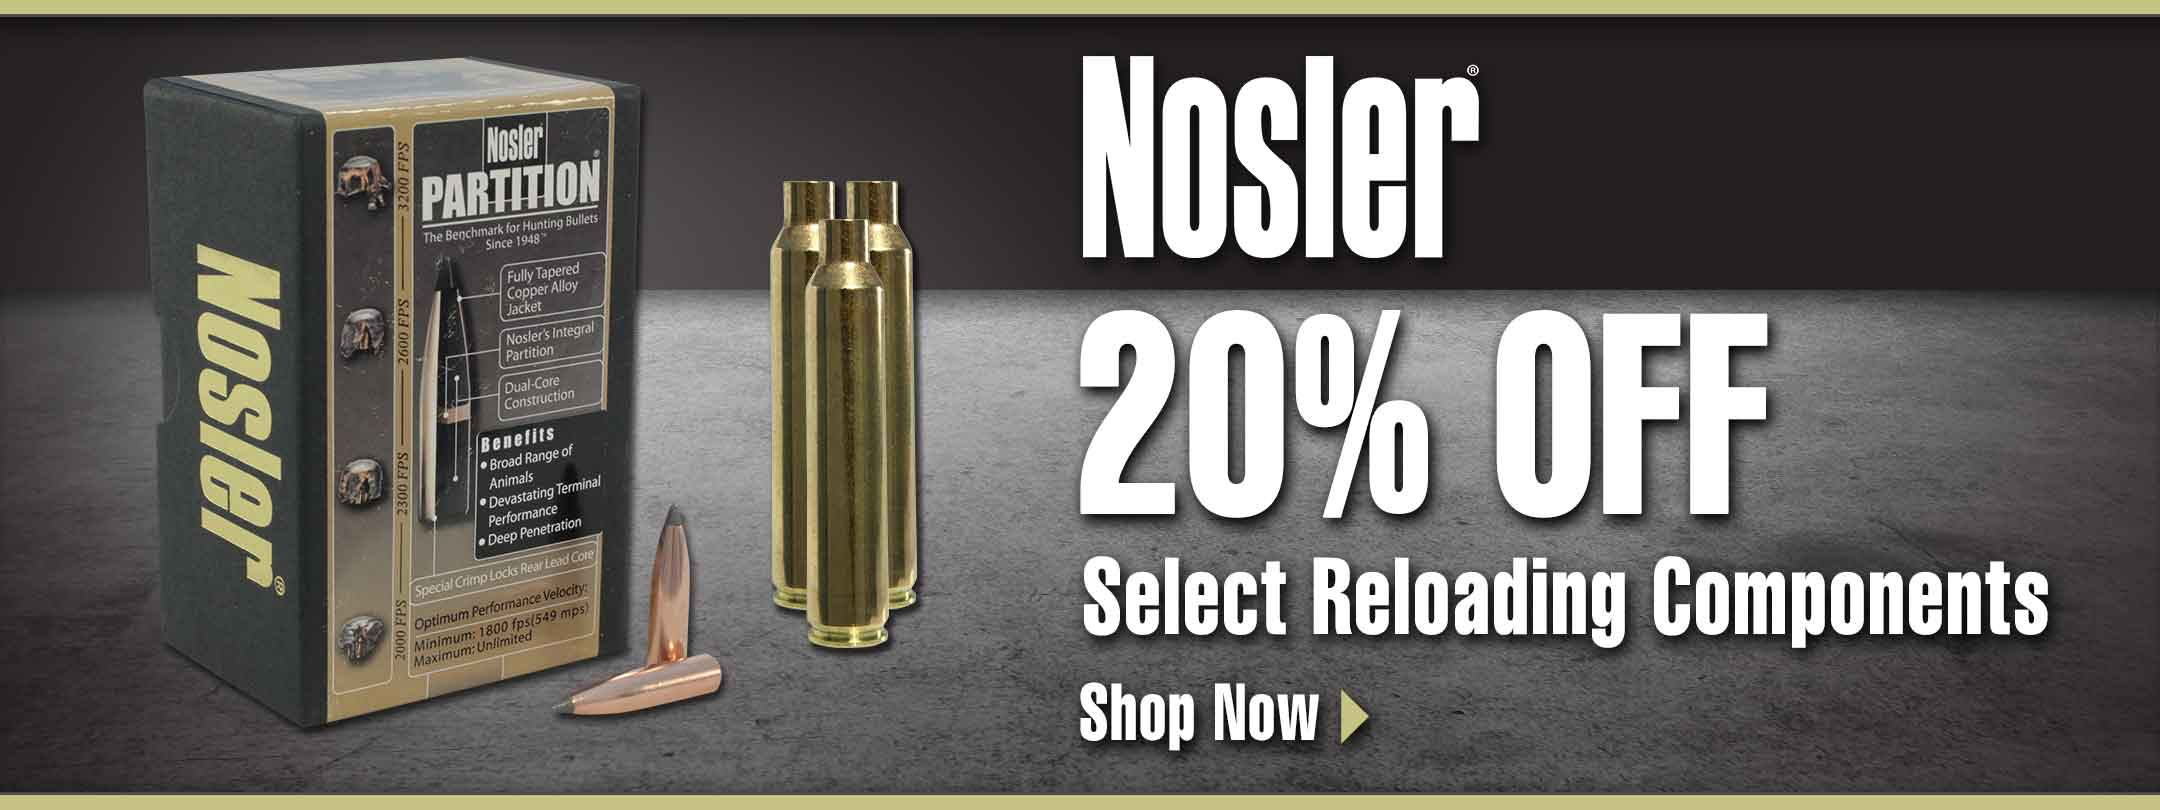 20% Off Select Nosler Reloading Components